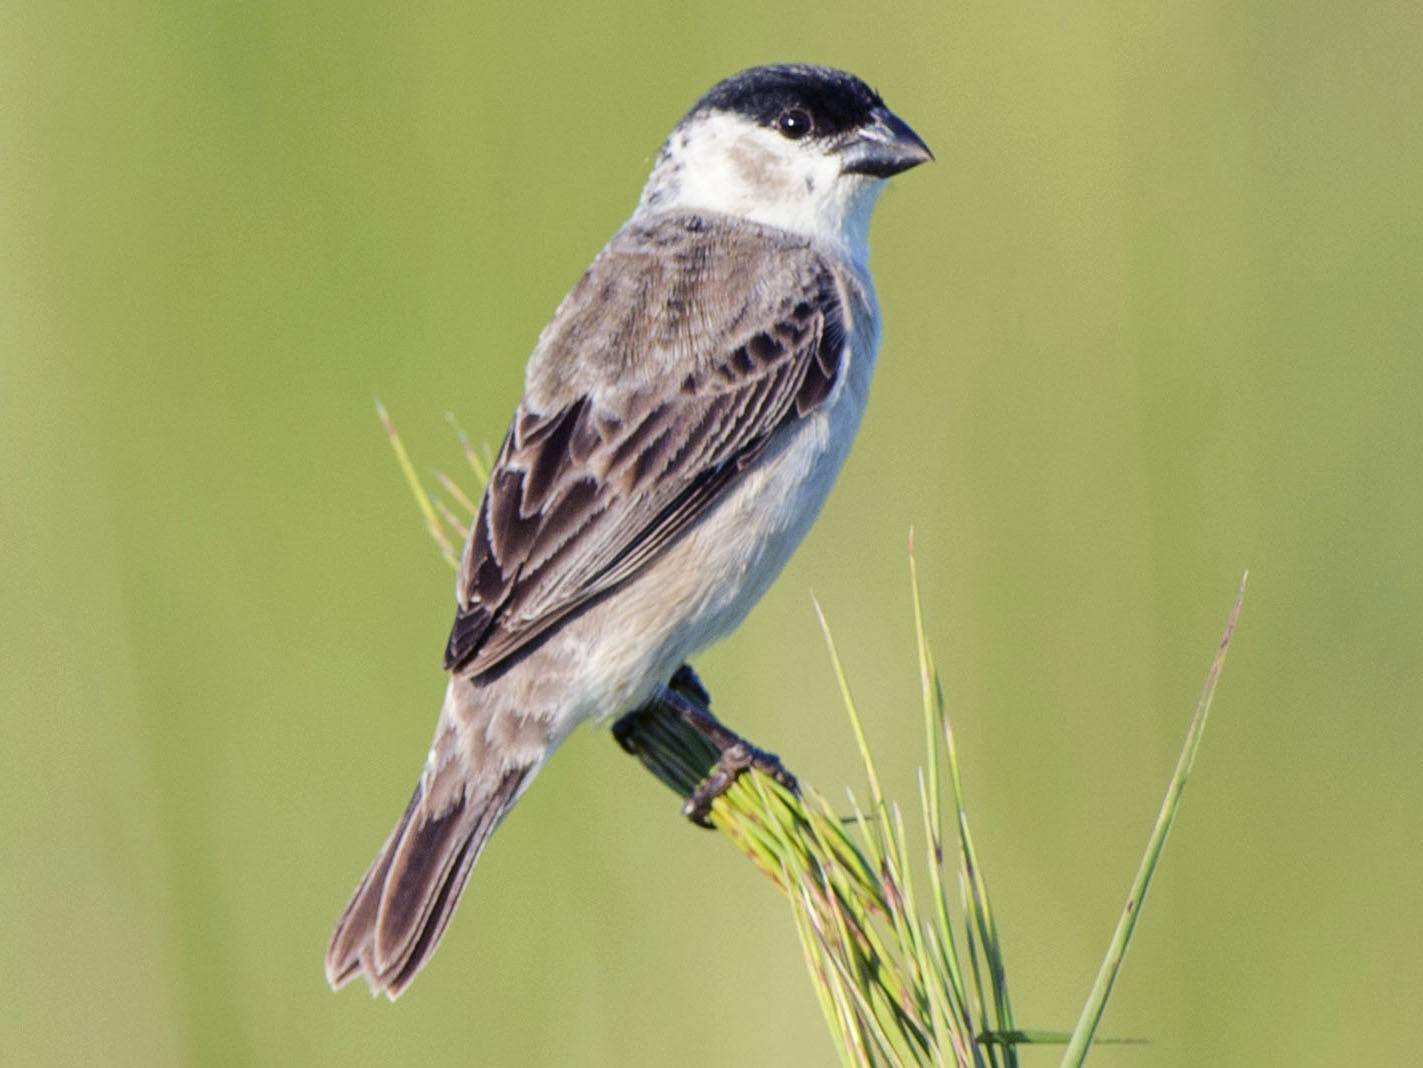 Pearly-bellied Seedeater - Adrian Eisen Rupp